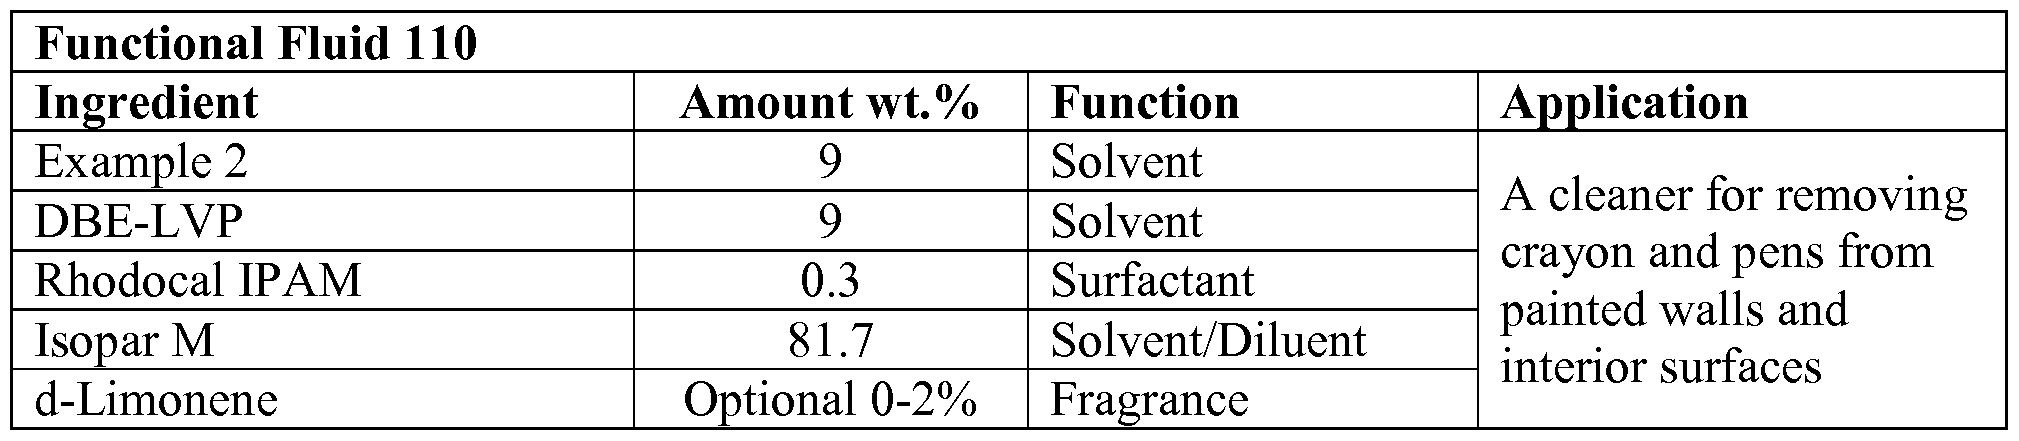 WO2015168658A1 - Solvent compositions based on dihydrofarnesene